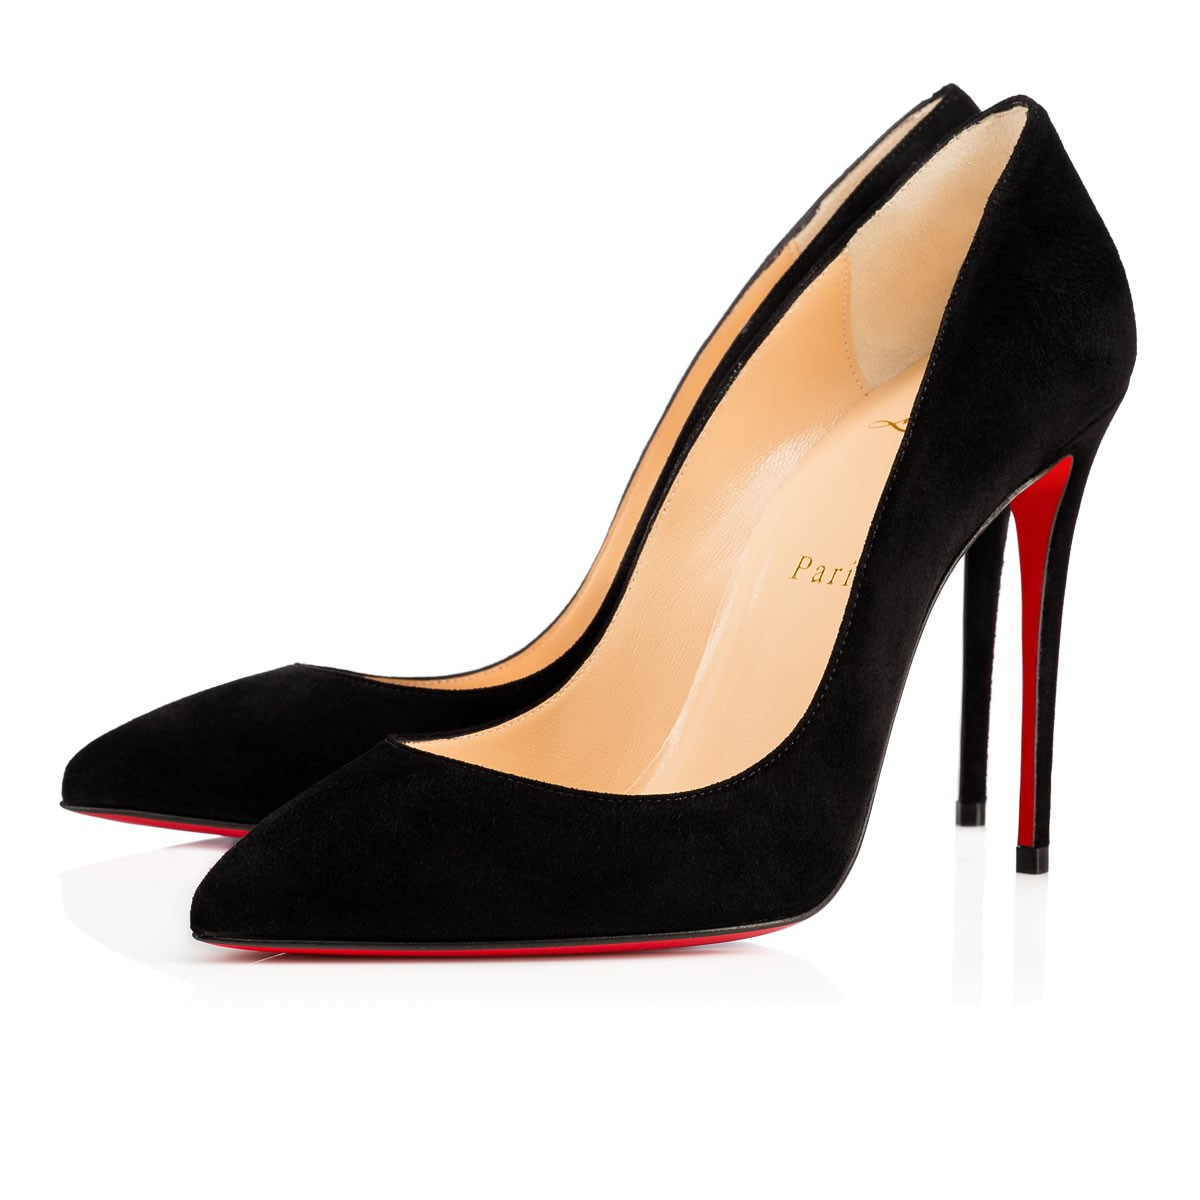 best sneakers a31b5 a5076 Pigalle Follies 100 Black Suede - Women Shoes - Christian Louboutin